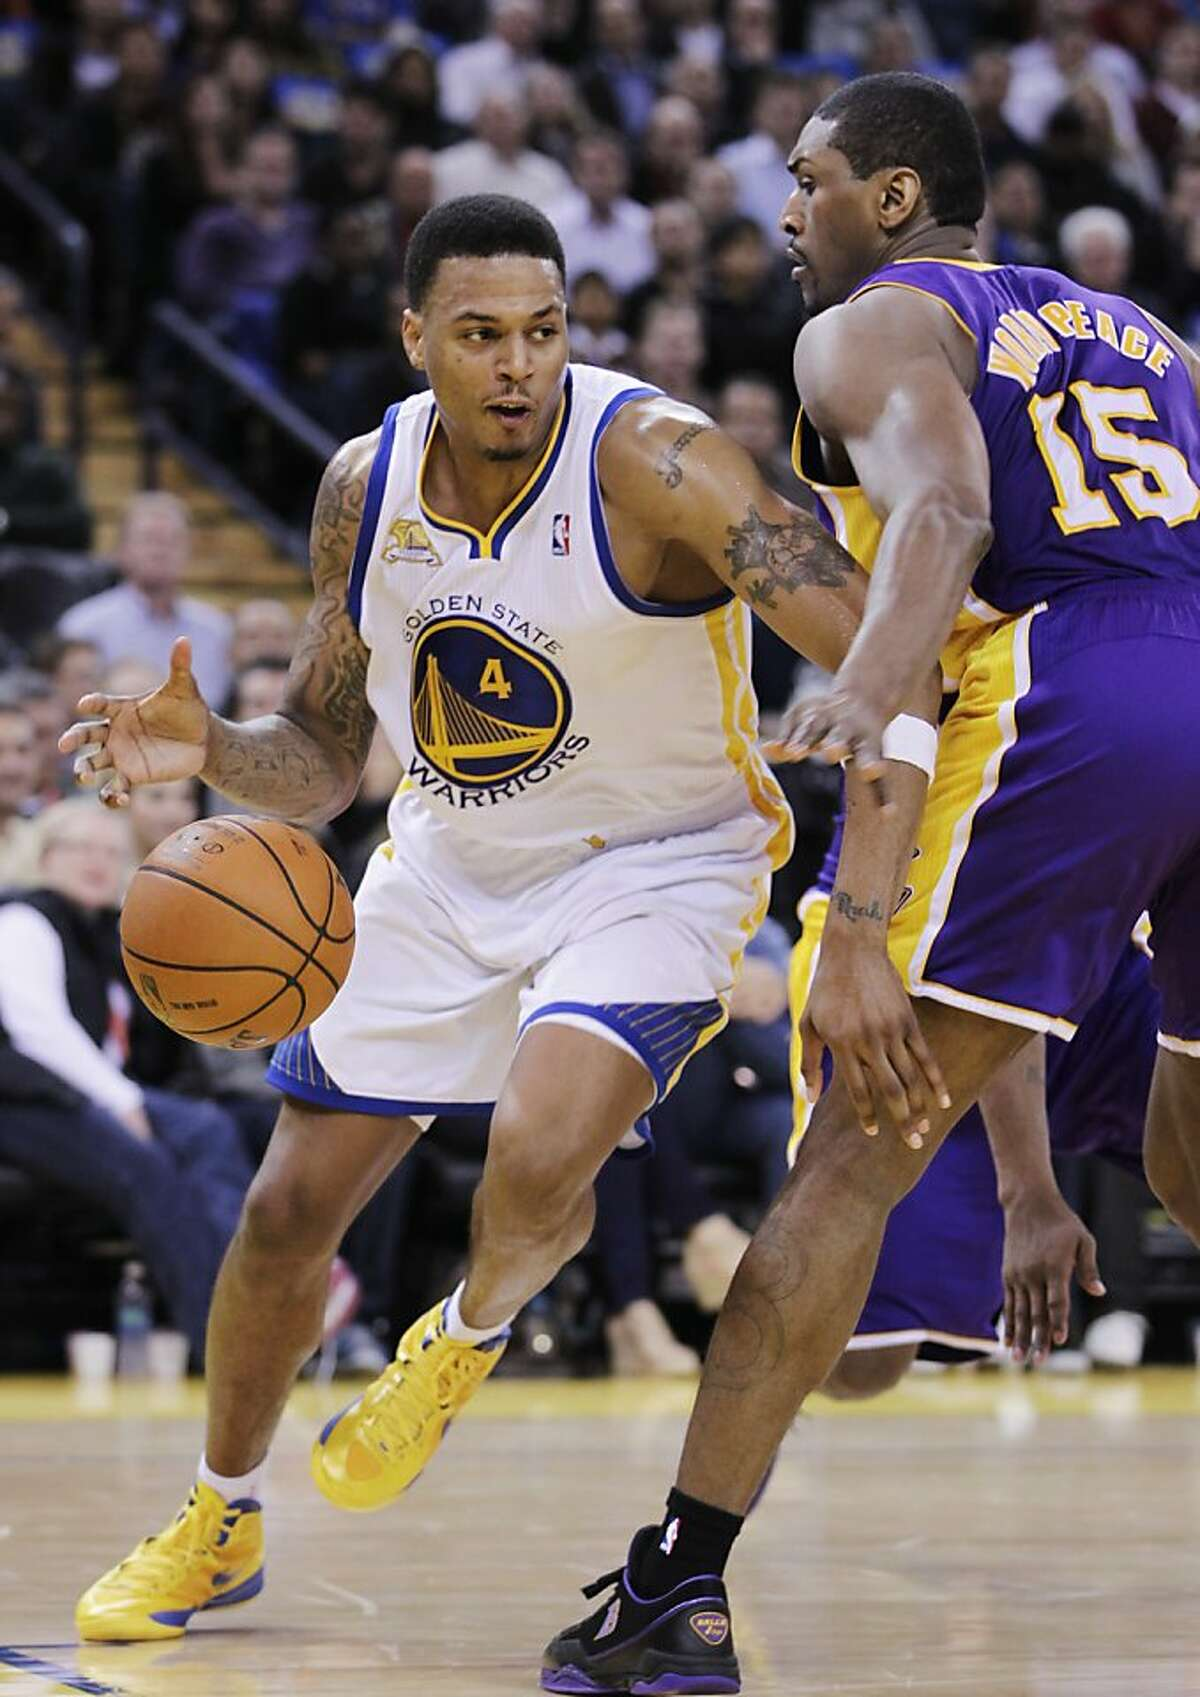 Golden State Warriors shooting guard Brandon Rush (4) loses the ball in front of Los Angeles Lakers small forward Metta World Peace (15) in the fourth quarter of an NBA basketball game in Oakland, Calif., Tuesday, March 27, 2012. The Lakers defeated the Warriors 104-101. (AP Photo/Paul Sakuma)